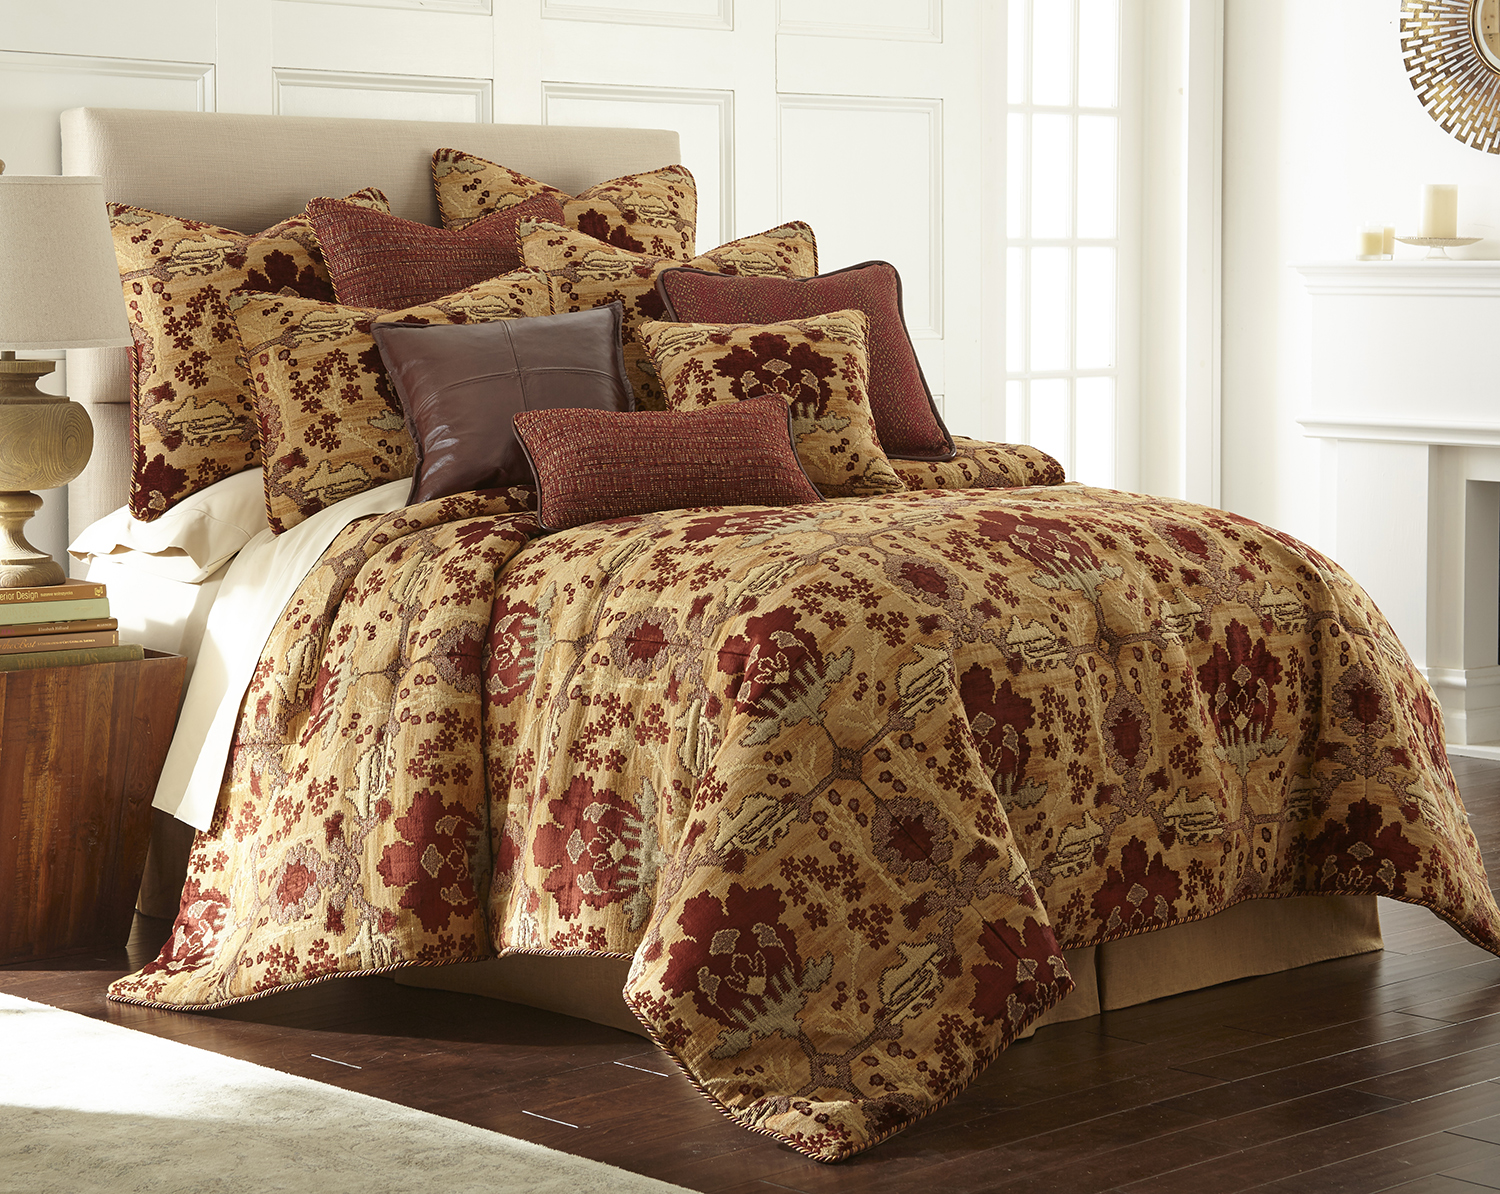 Dakota By Austin Horn Luxury Bedding Beddingsuperstore Com